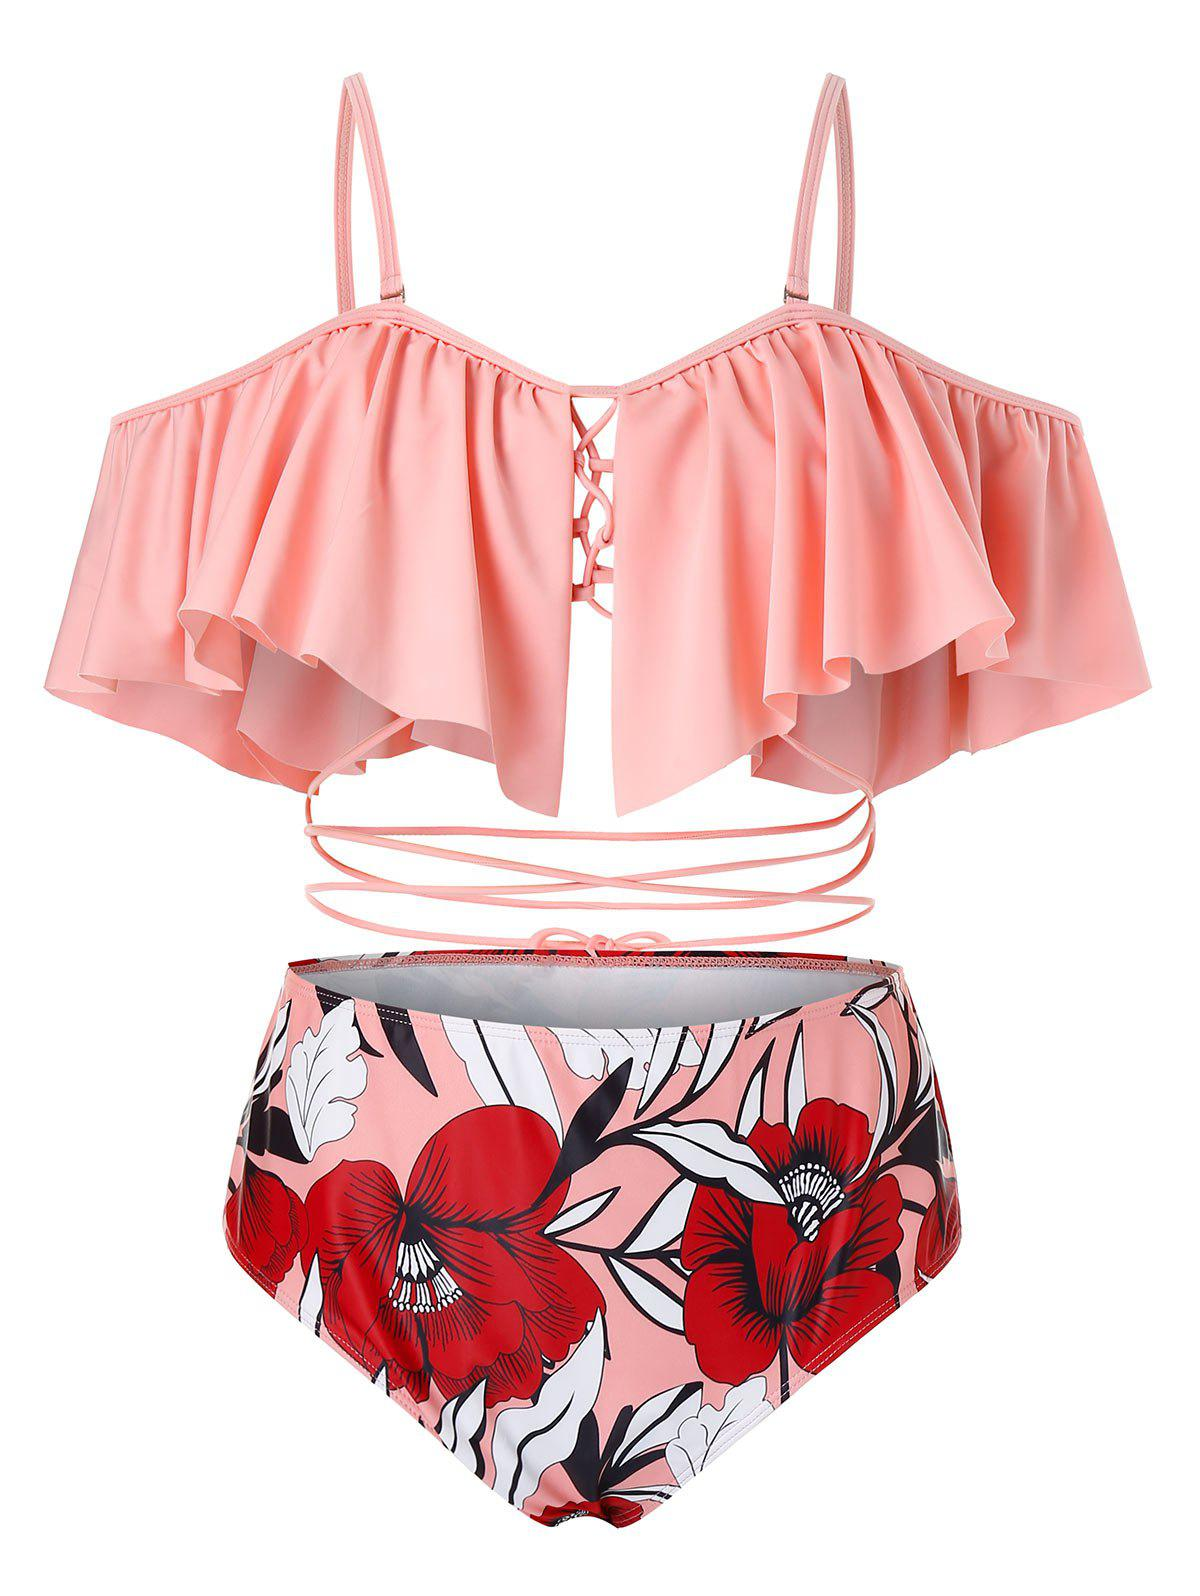 Plus Size Ruffled Lace Up Floral Two Piece Swimsuit - LIGHT PINK 5X